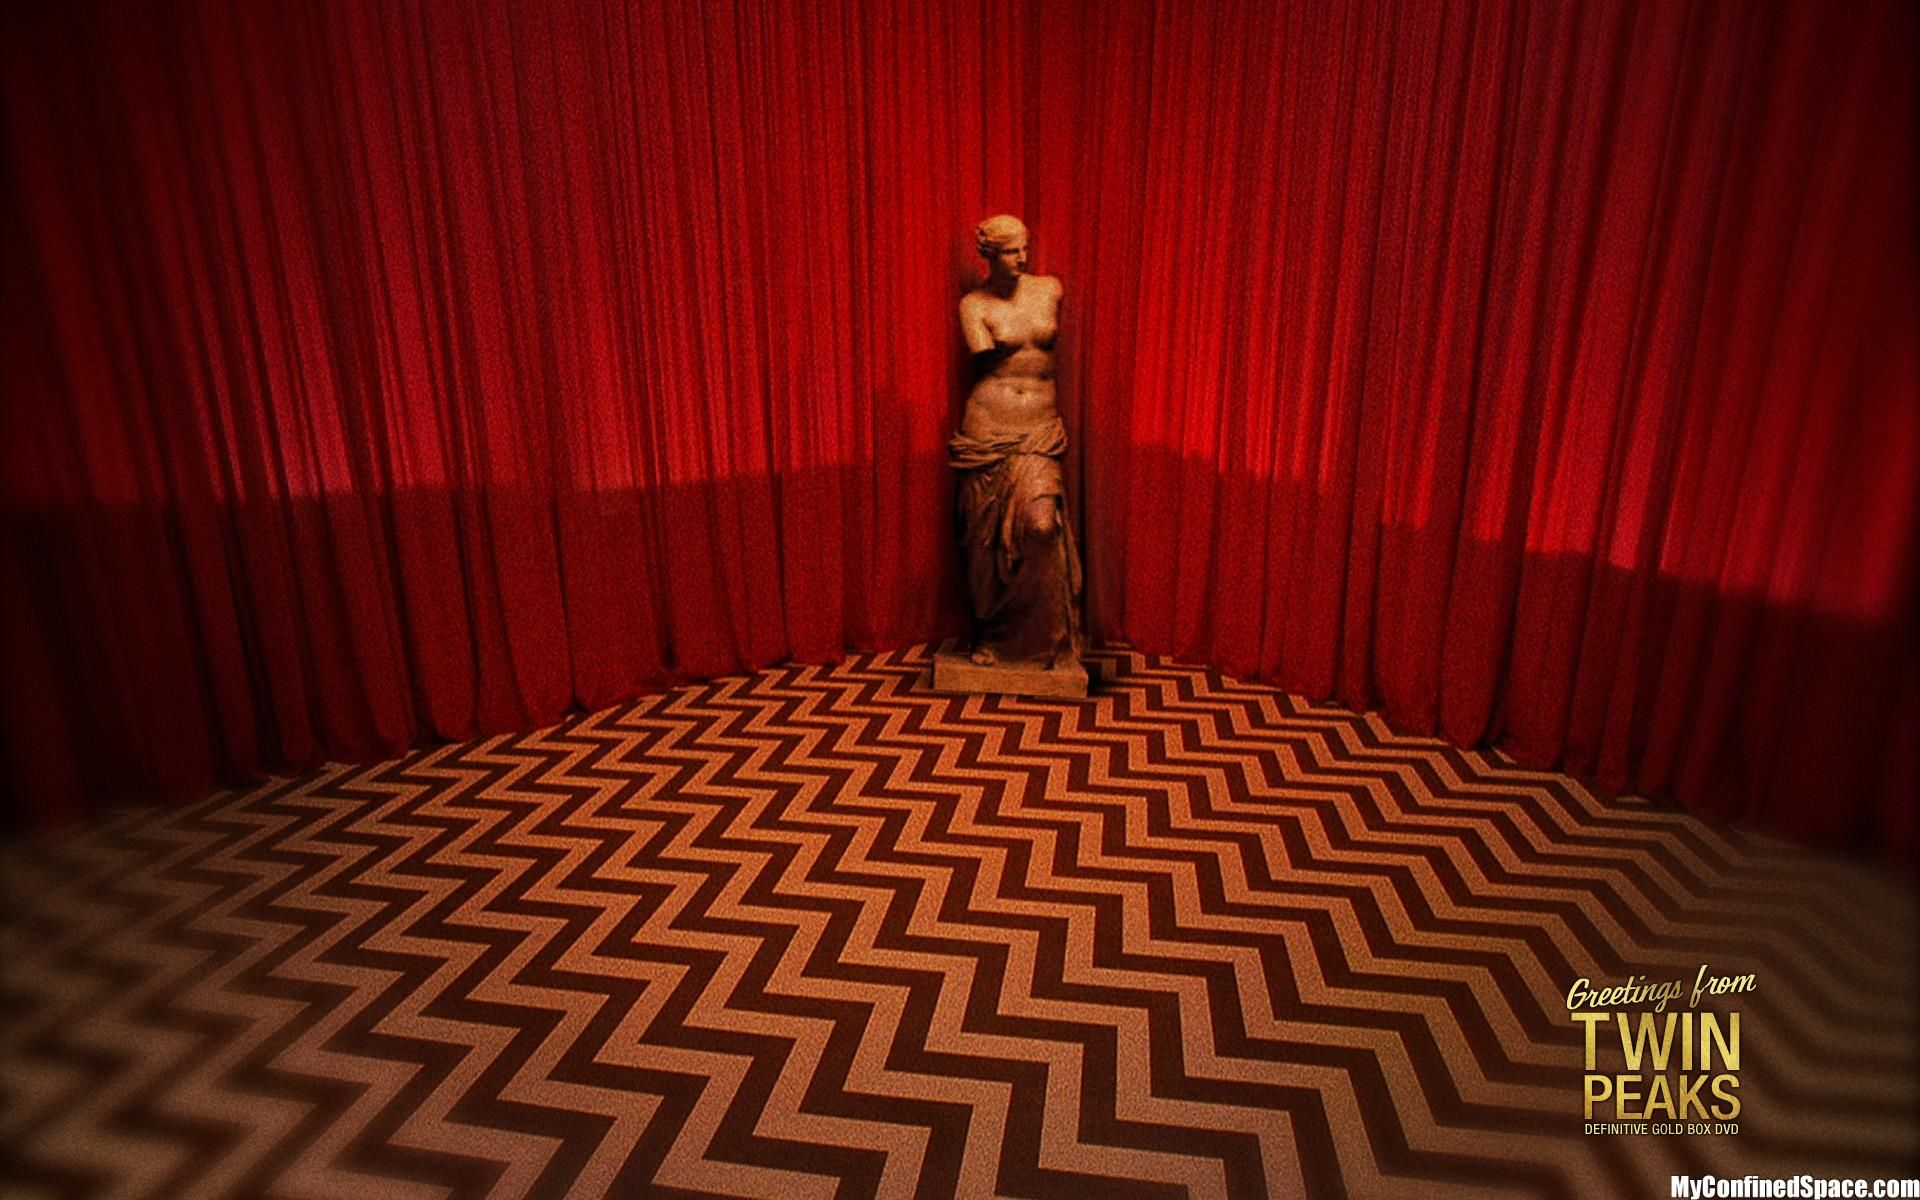 greetings from twin peaks  the red room  twin peaks  Pinterest  Red rooms Twins and David lynch